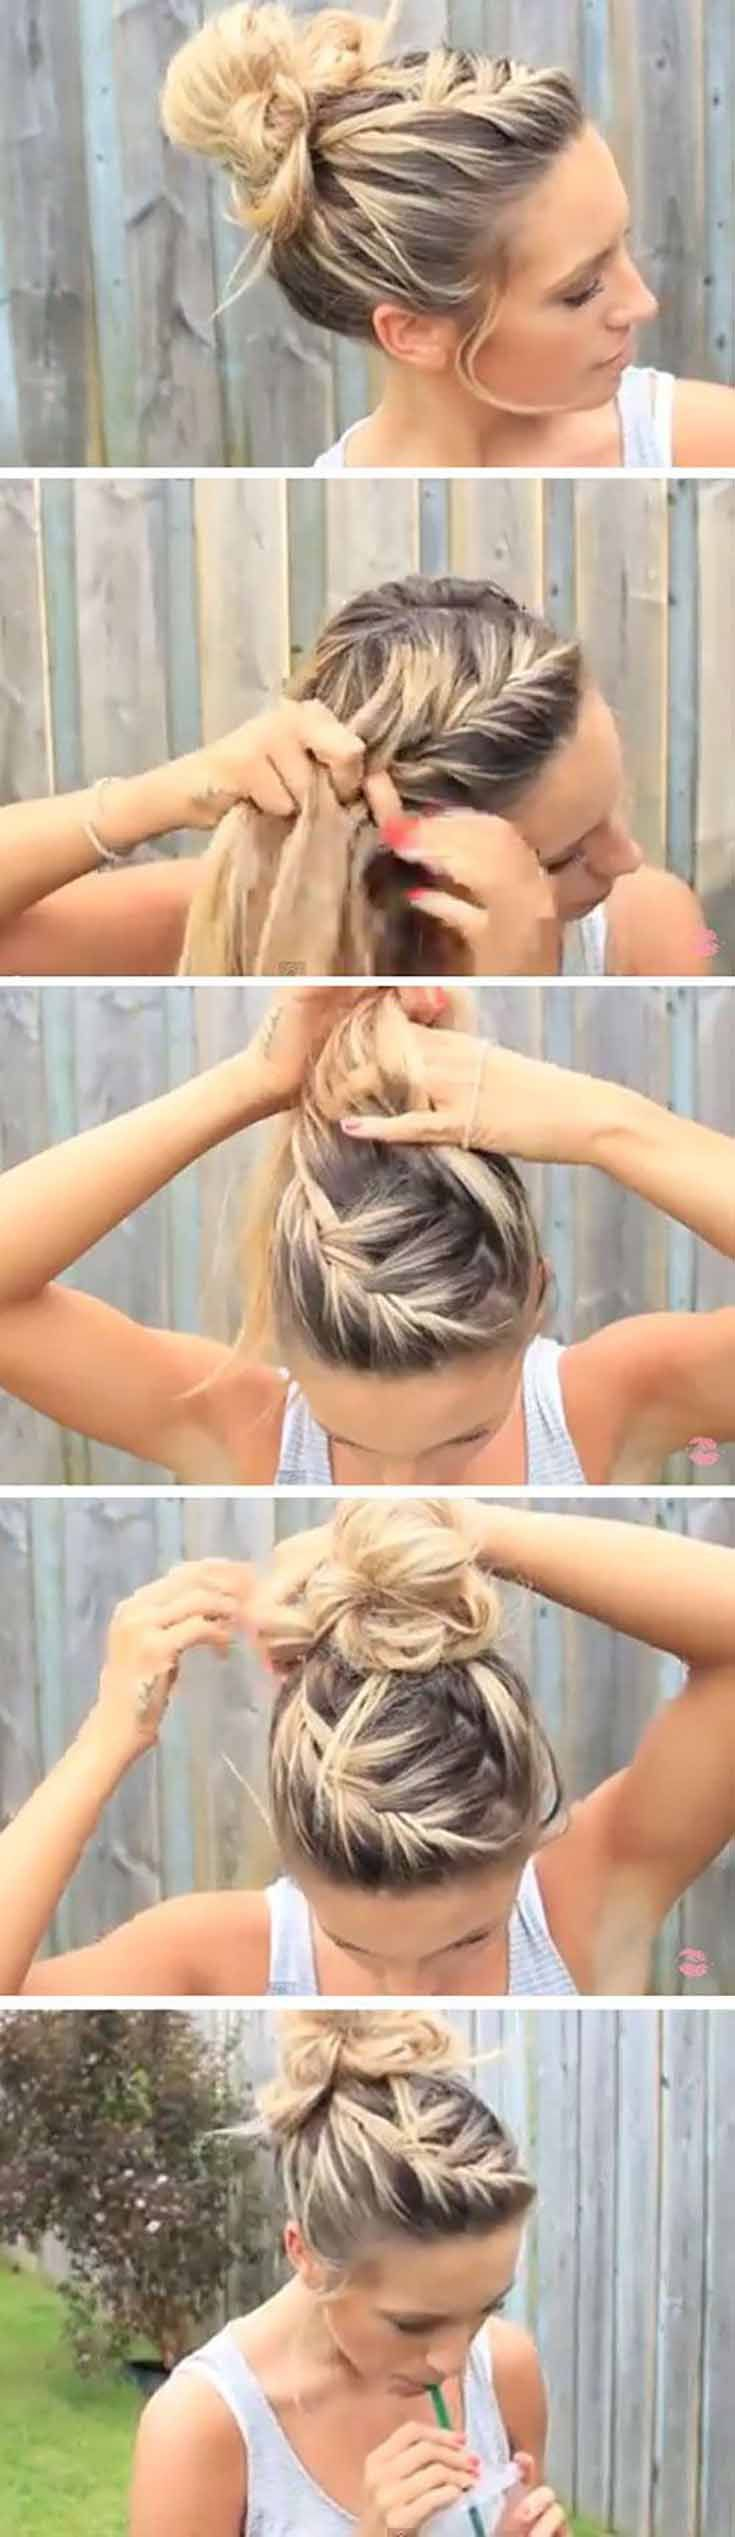 Thanksgiving Is Around Us Which Means You Will Soon Be Ready For Your Beauty Essentials And Flowy Dresses A Hair Styles Diy Hairstyles Easy Long Hair Styles